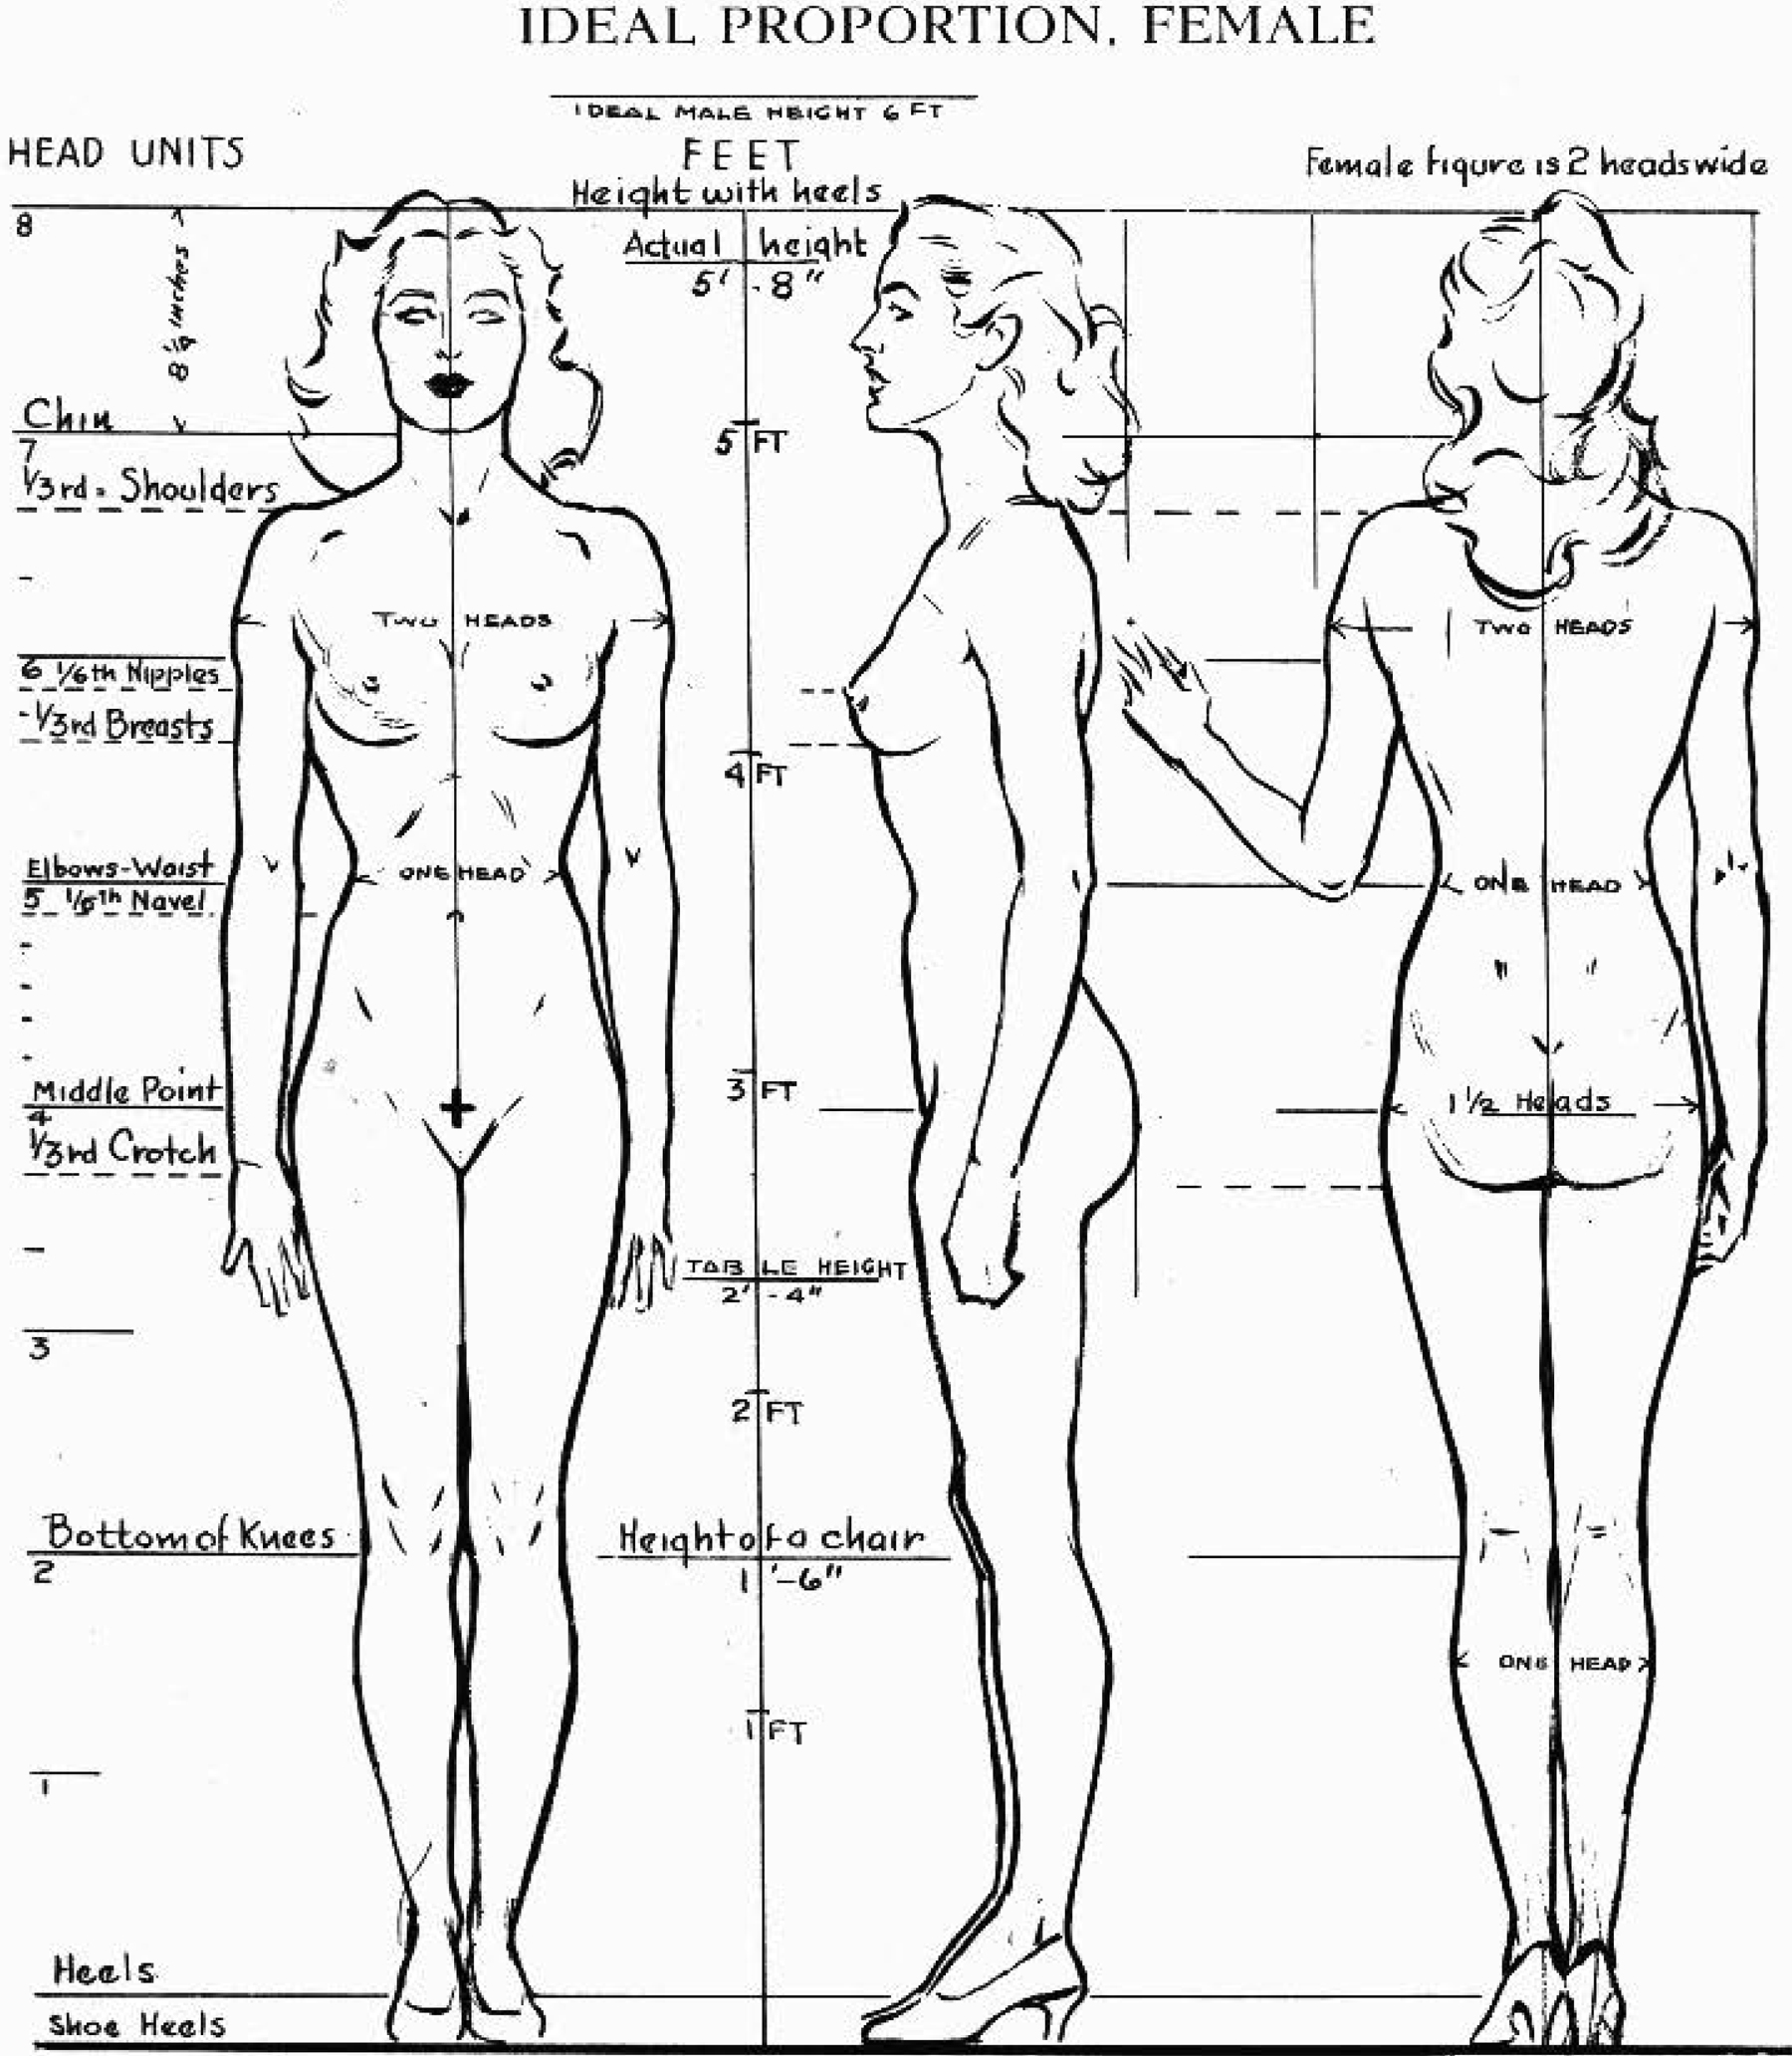 The female figure in the correct proportions